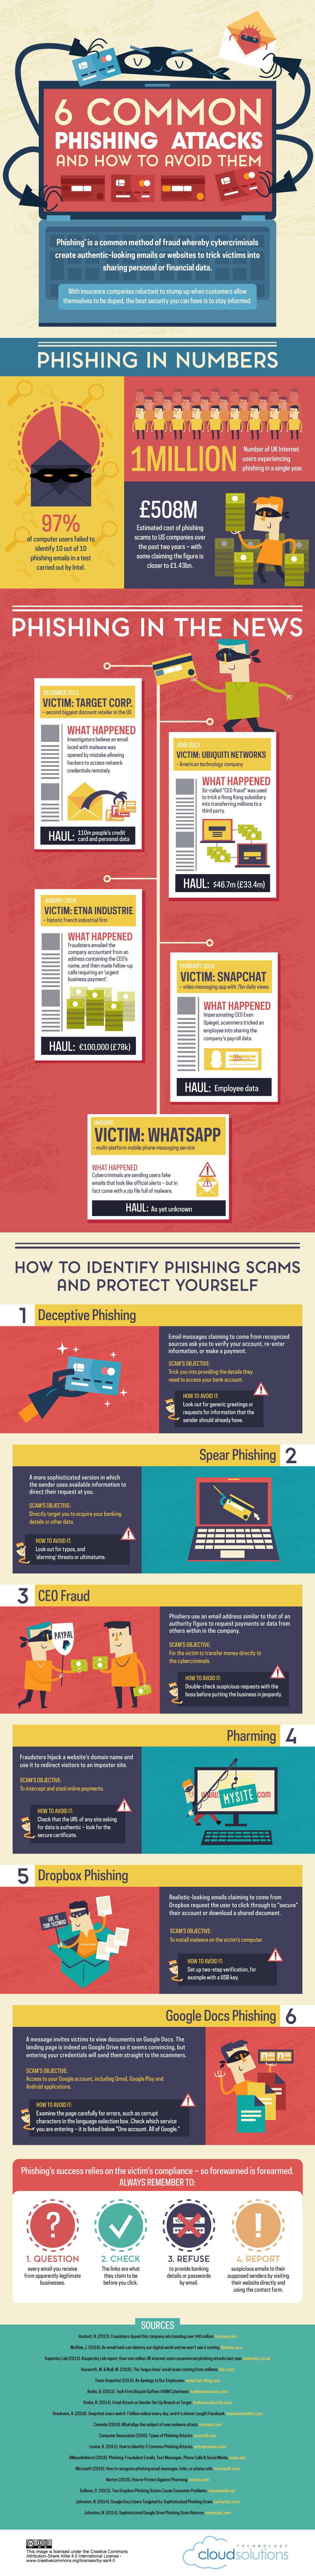 phishing and pharming attacks Countering the phishing/pharming threat ron collette, cissp and mike gentile, cissp february, 2006 phishing attacks are growing in number and in email phishing attacks the earliest form of phishing attacks lacked both creativity and technical capability essentially, they were spam emails.